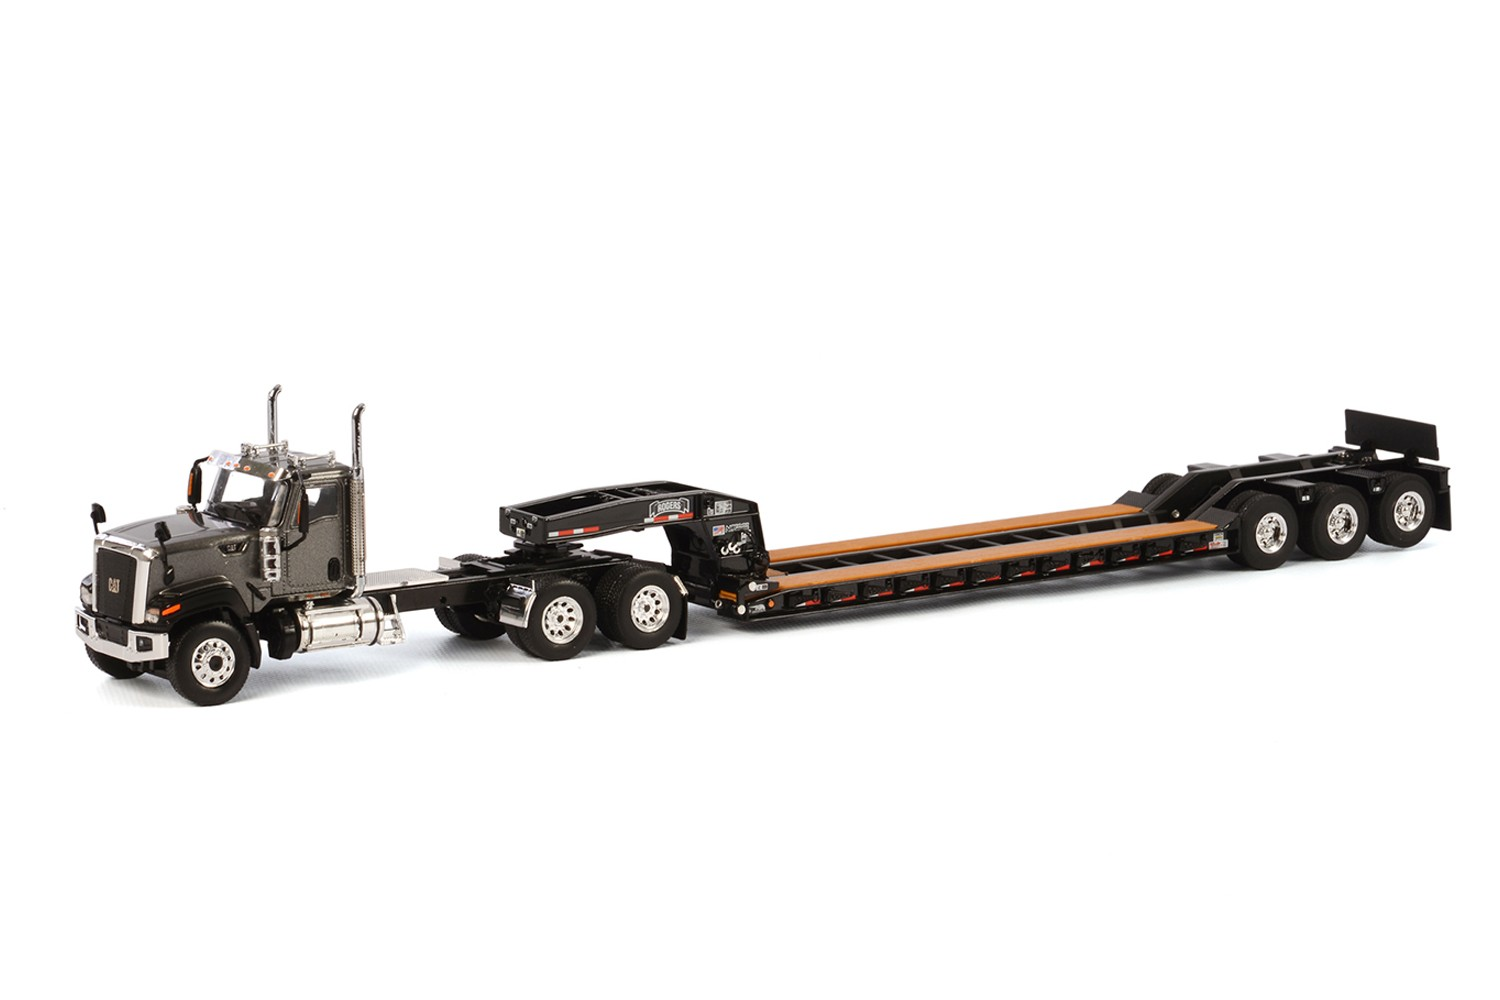 Caterpillar CT680 with 3 axle lowboy-Grey/Black